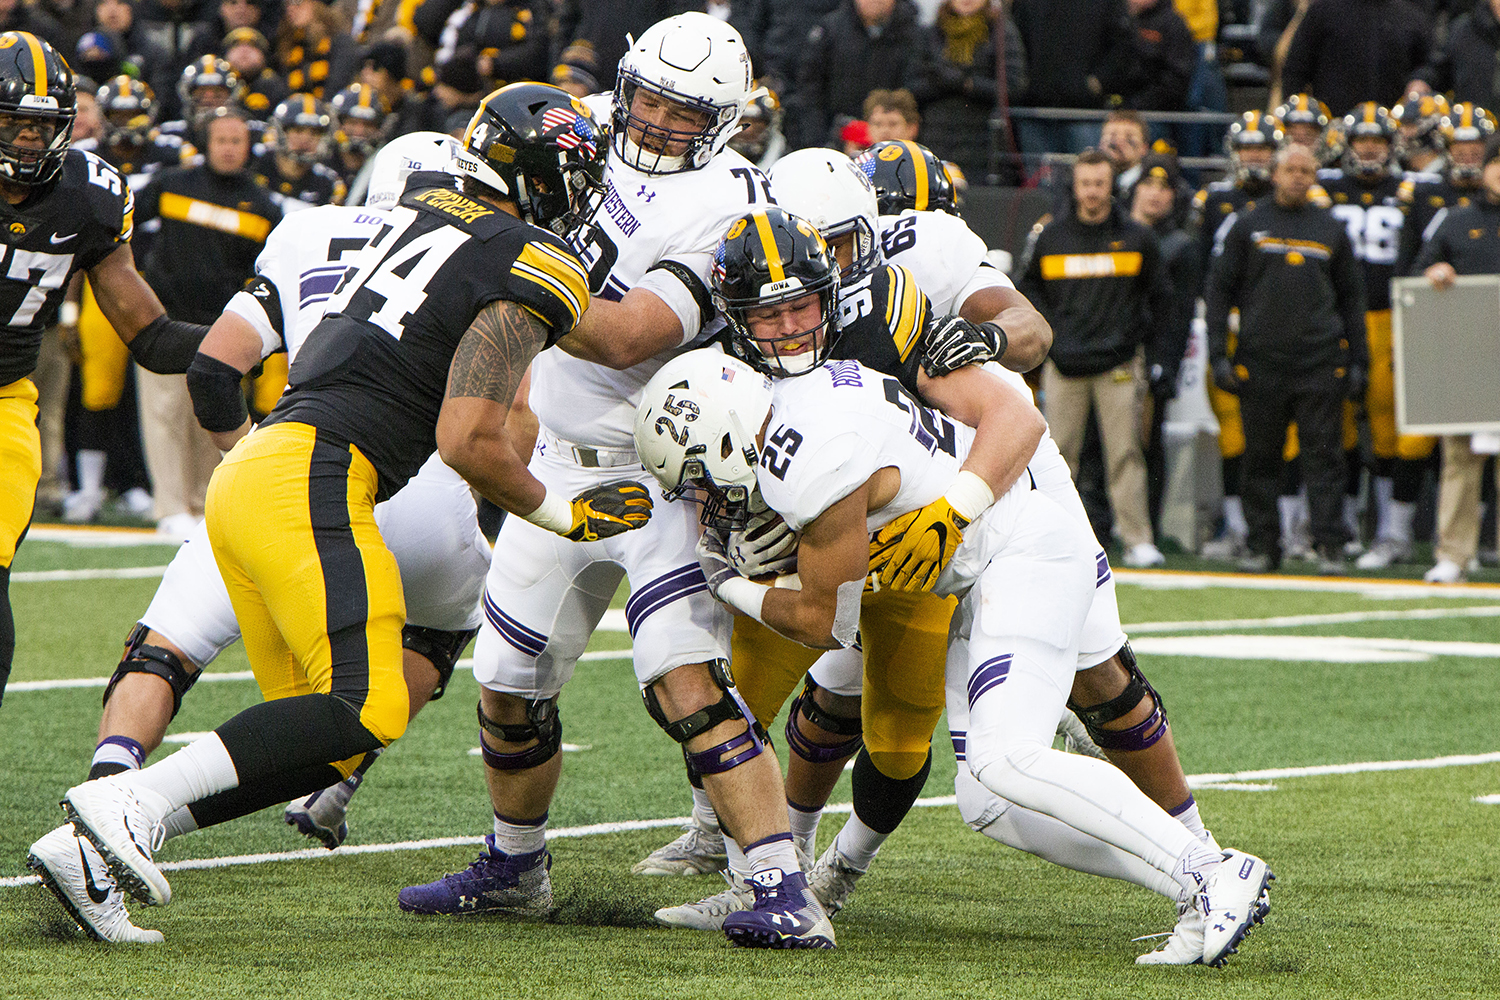 Iowa+defensive+lineman+Brady+Reiff+%2891%29+tackles+Northwestern+running+back+Isaiah+Bowser+%2825%29+during+the+Iowa%2FNorthwestern+game+at+Kinnick+Stadium+on+Saturday%2C+November+10%2C+2018.+The+Wildcats+defeated+the+Hawkeyes+14-10.+%28Katina+Zentz%2FThe+Daily+Iowan%29